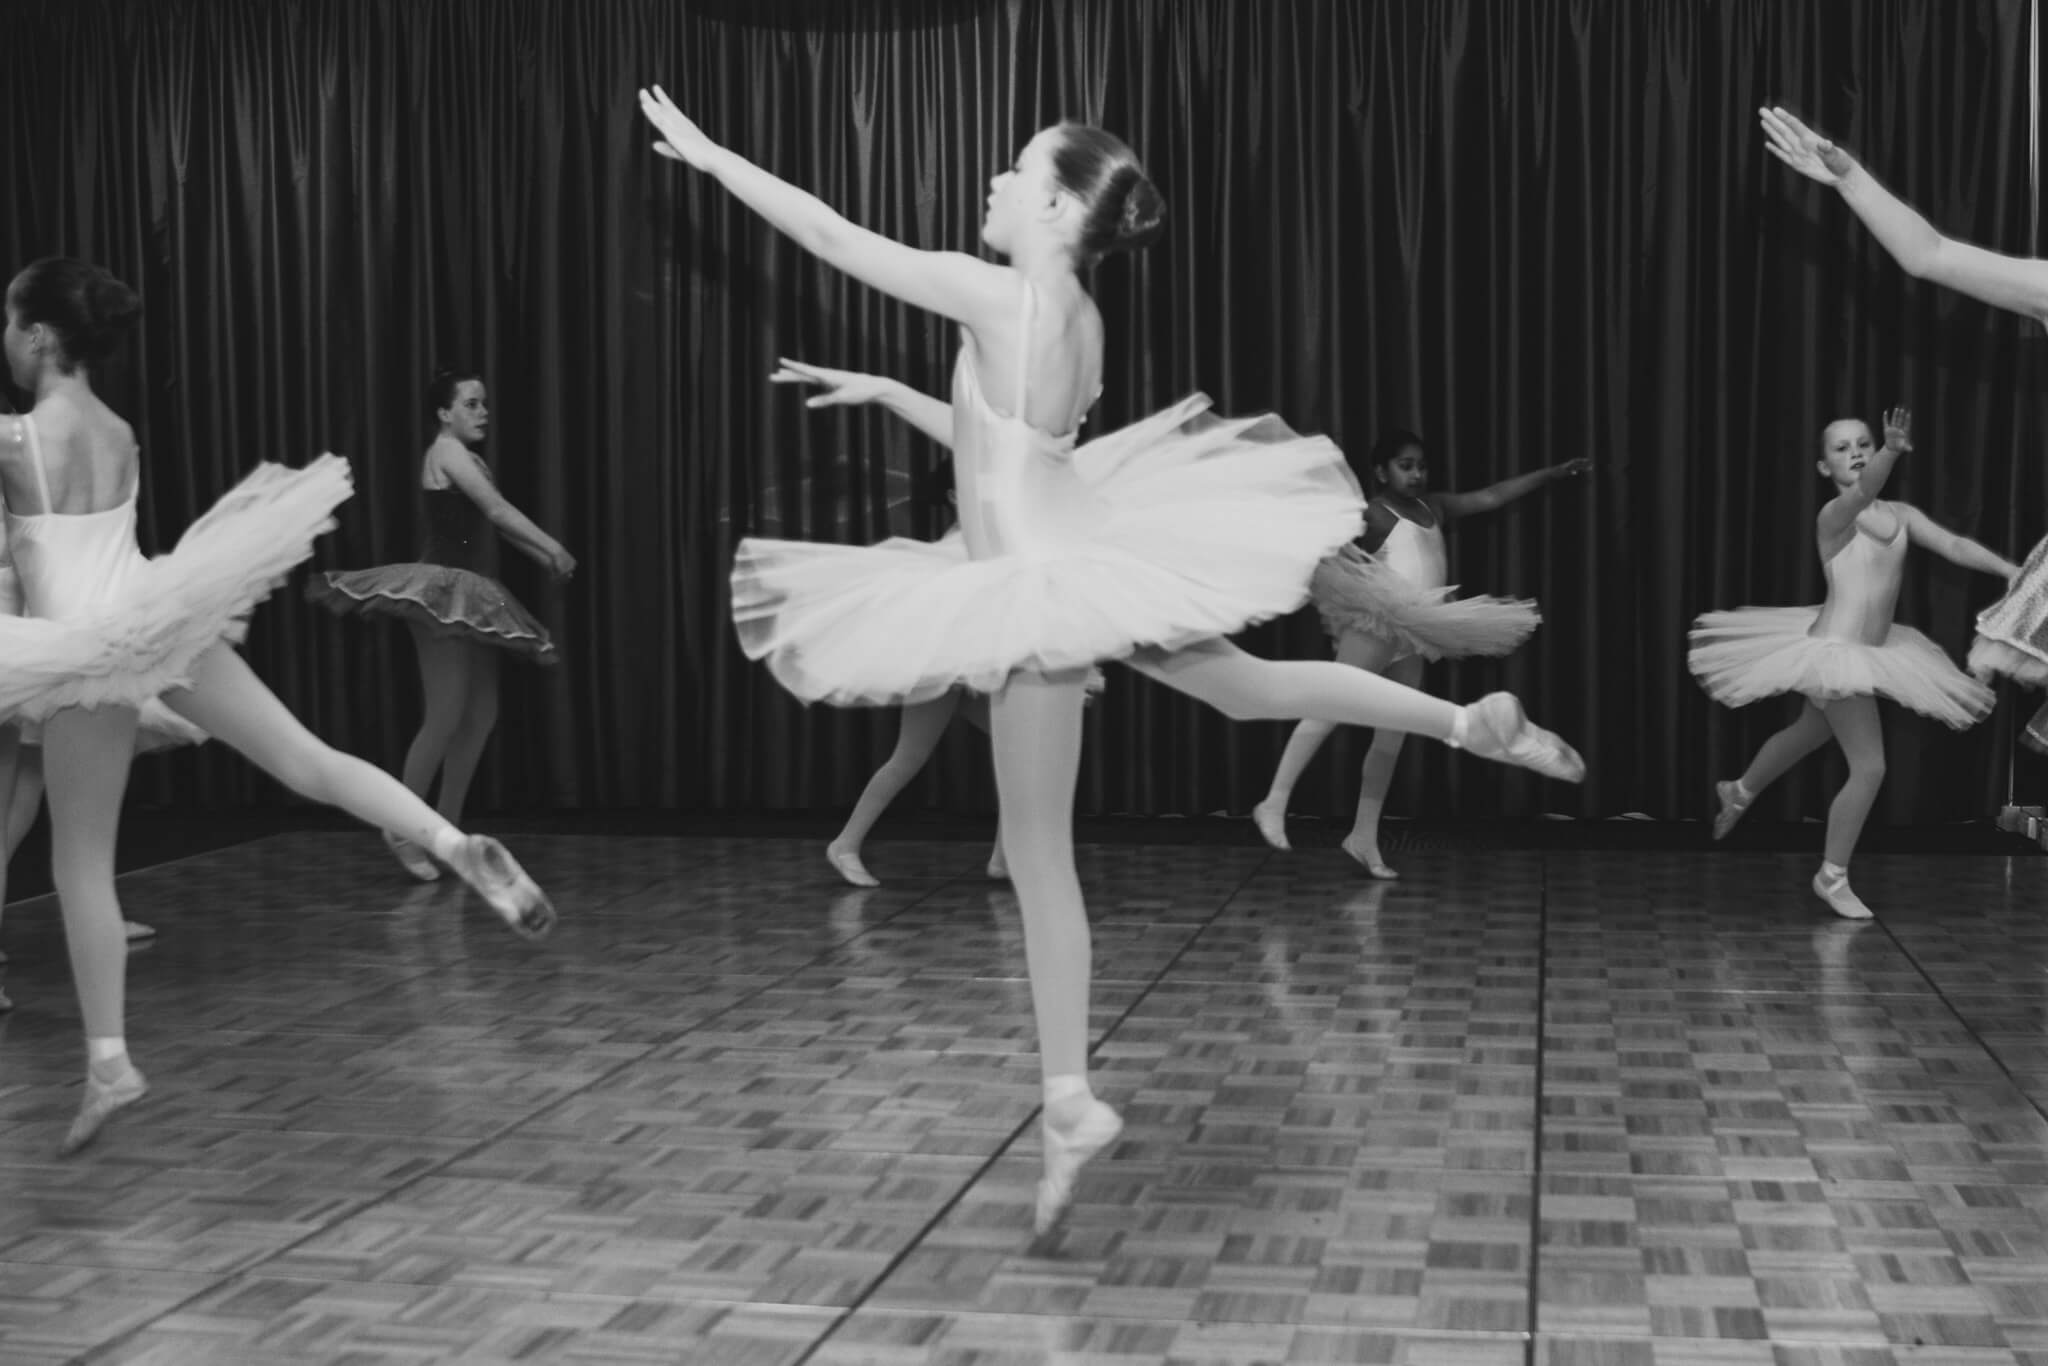 Dancers in a ball room